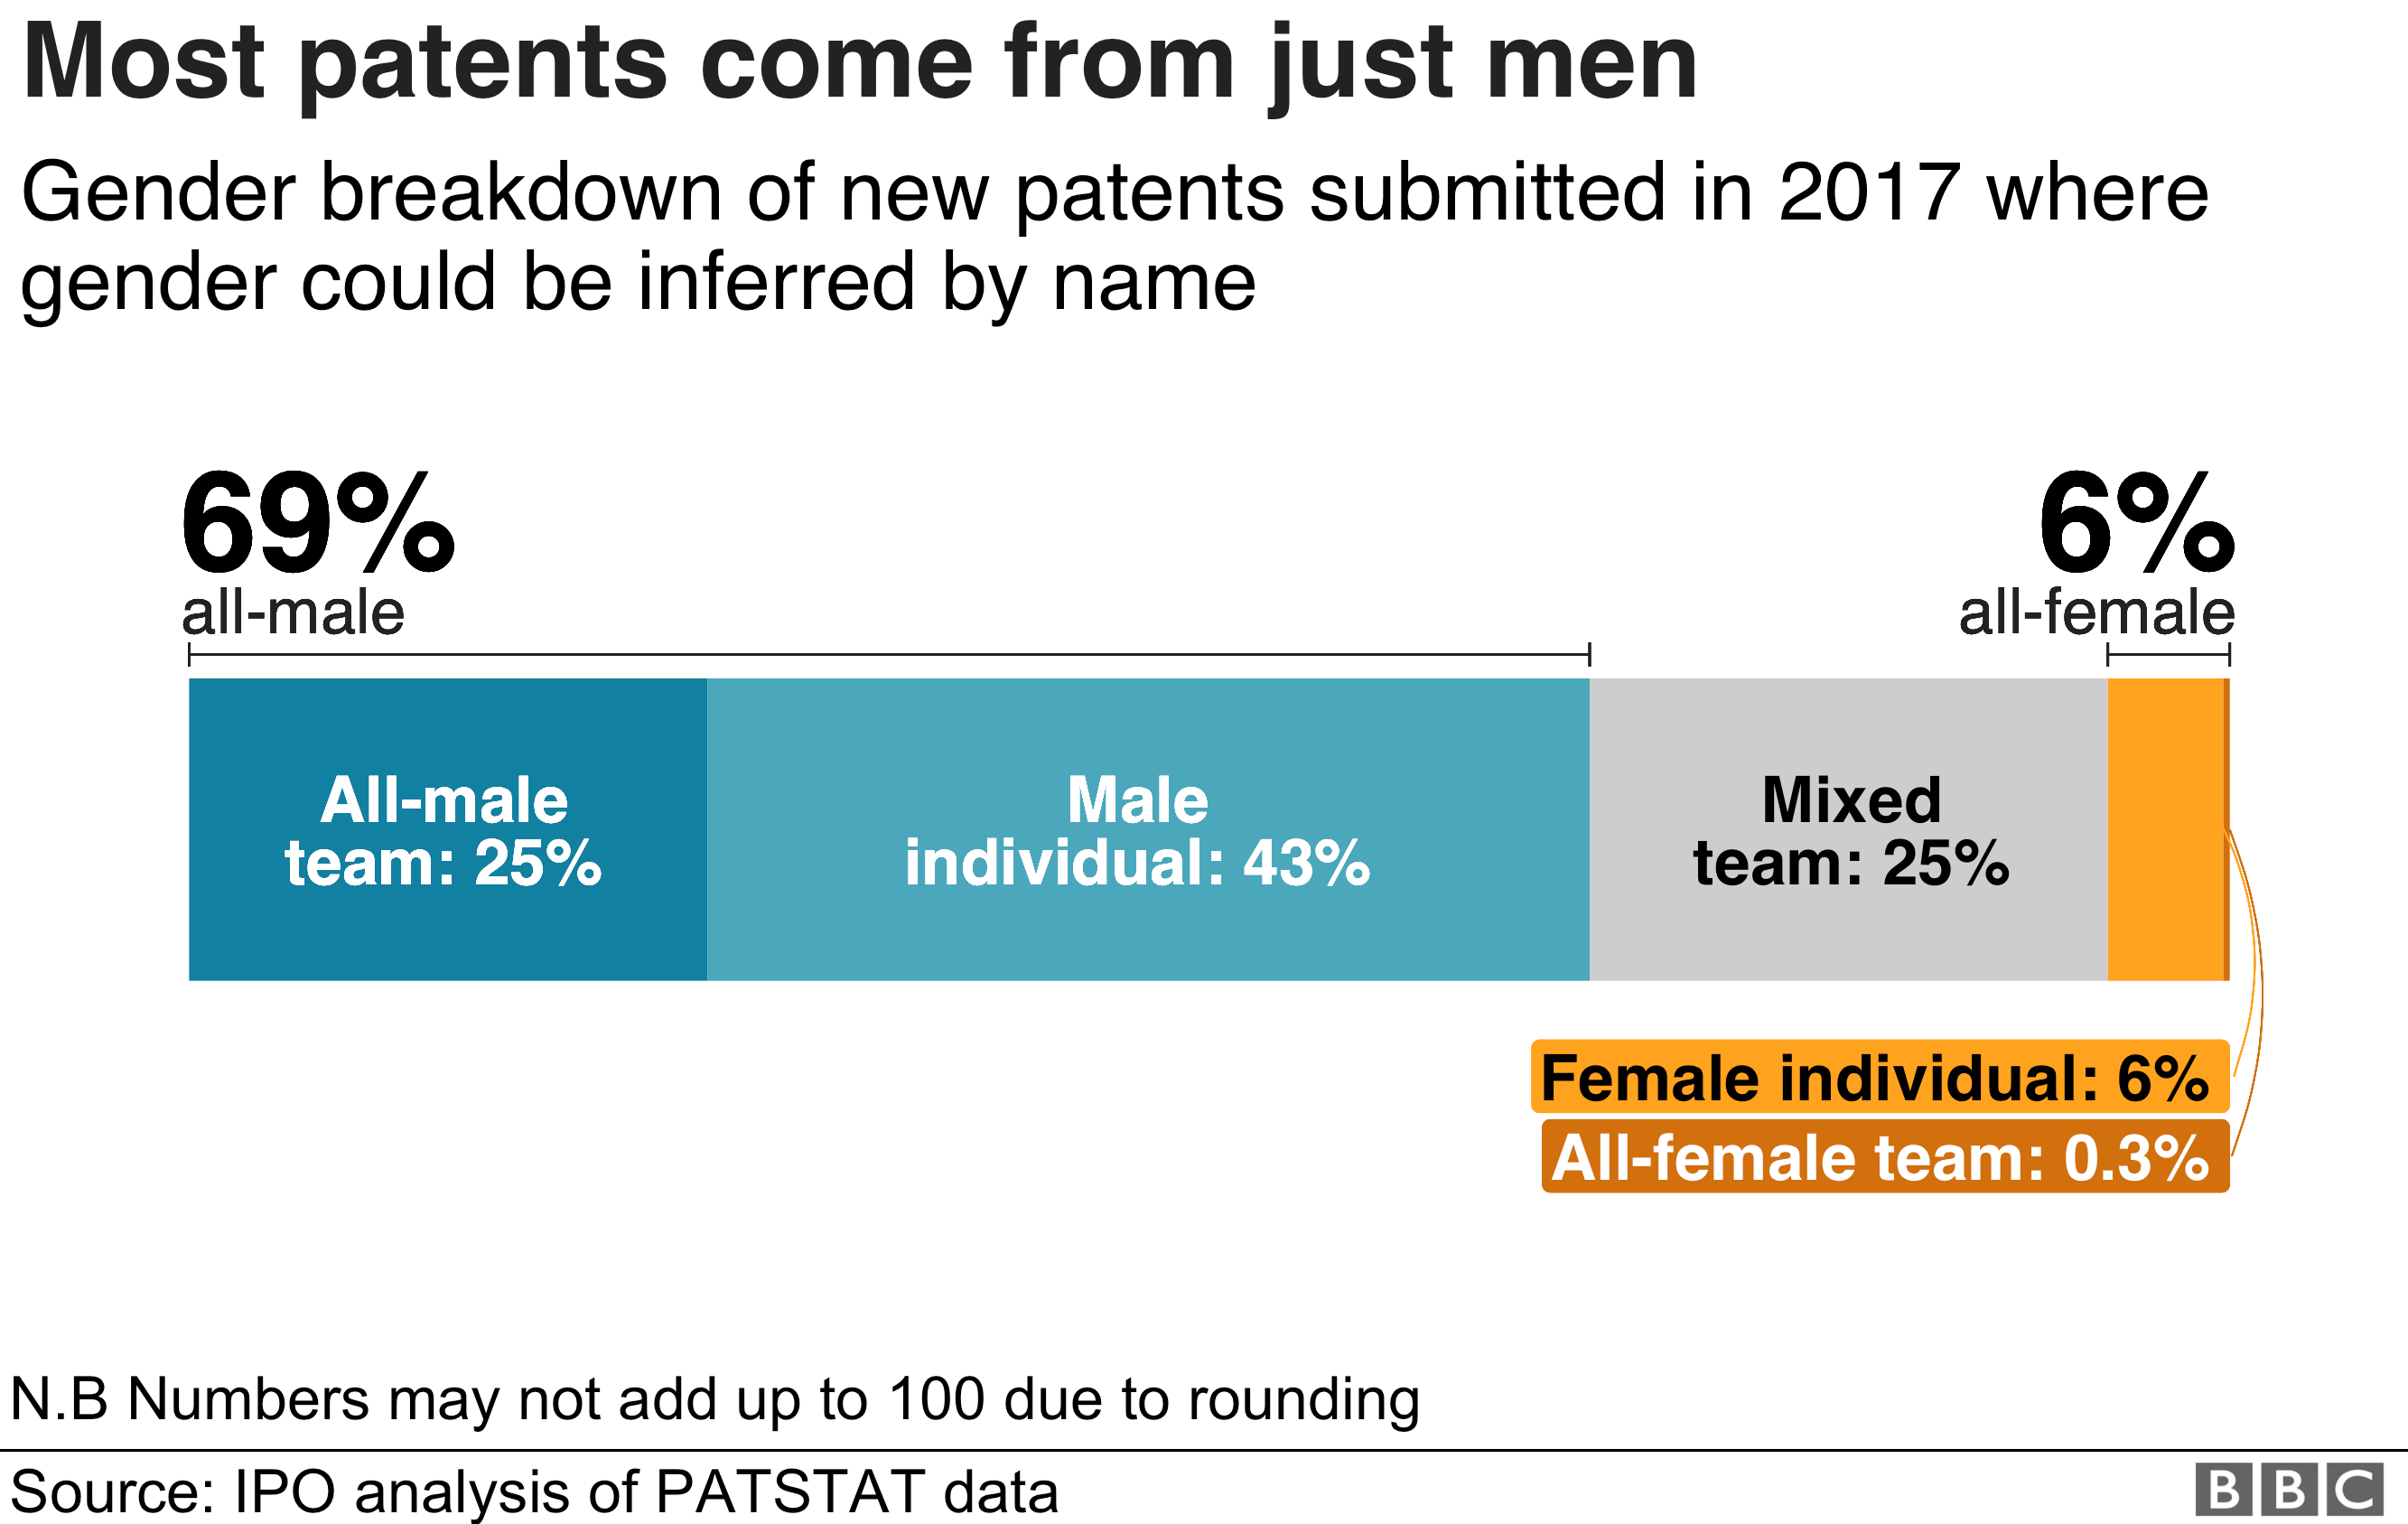 Chart showing that two-thirds of patent applications are all-male